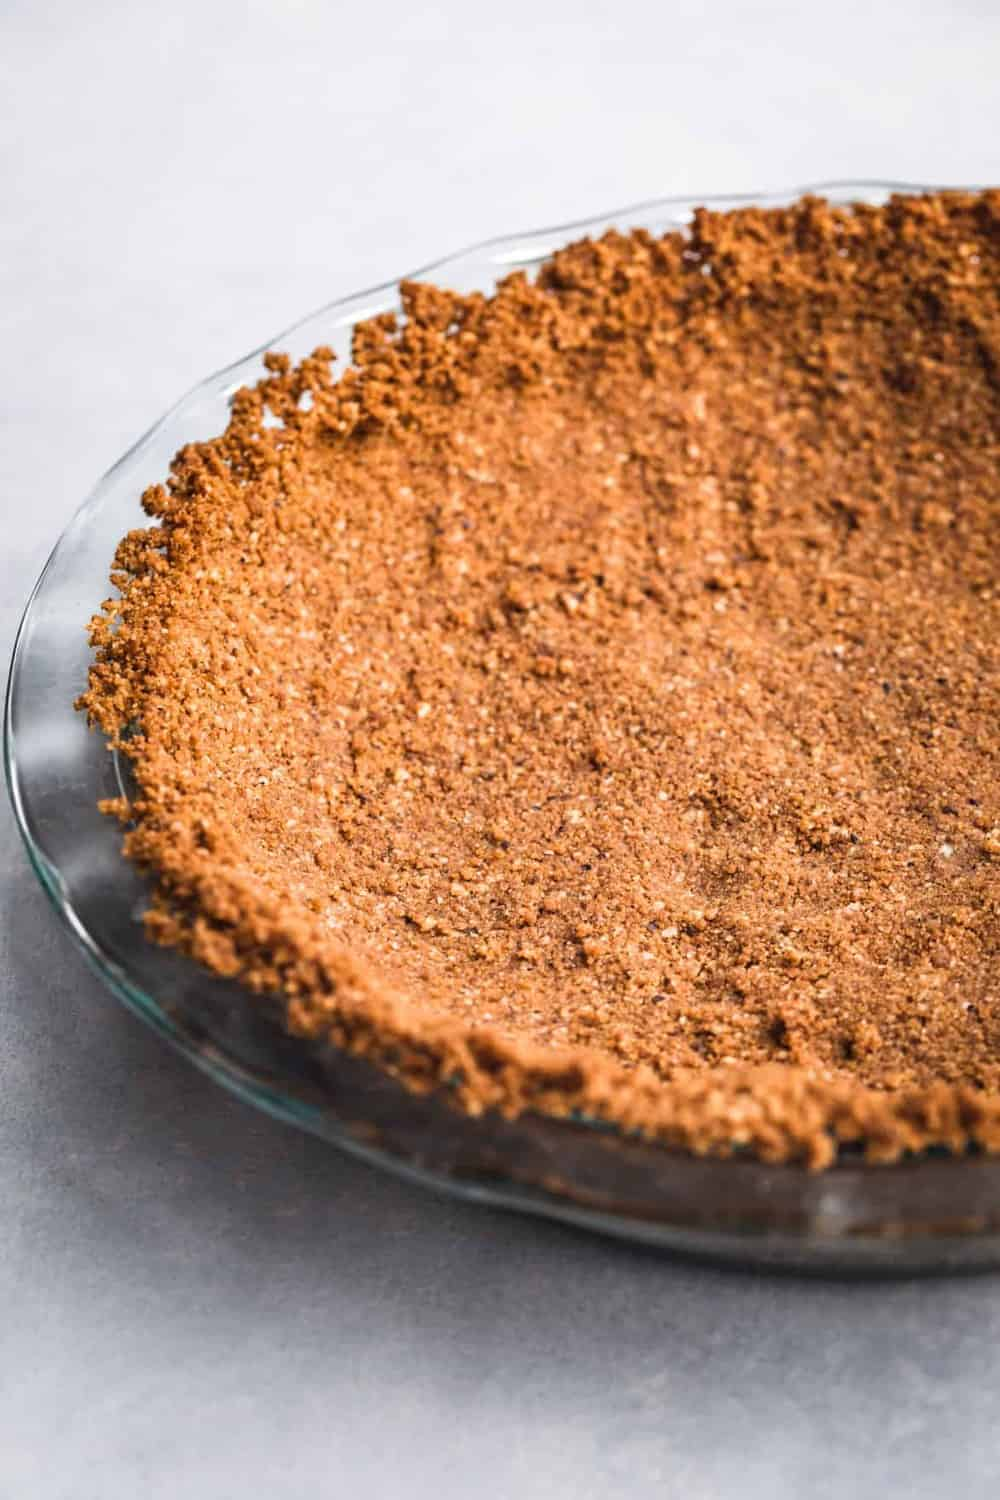 Gingersnap crust. Post oven and still empty. Side angle shot on a white background. Left side cut off.